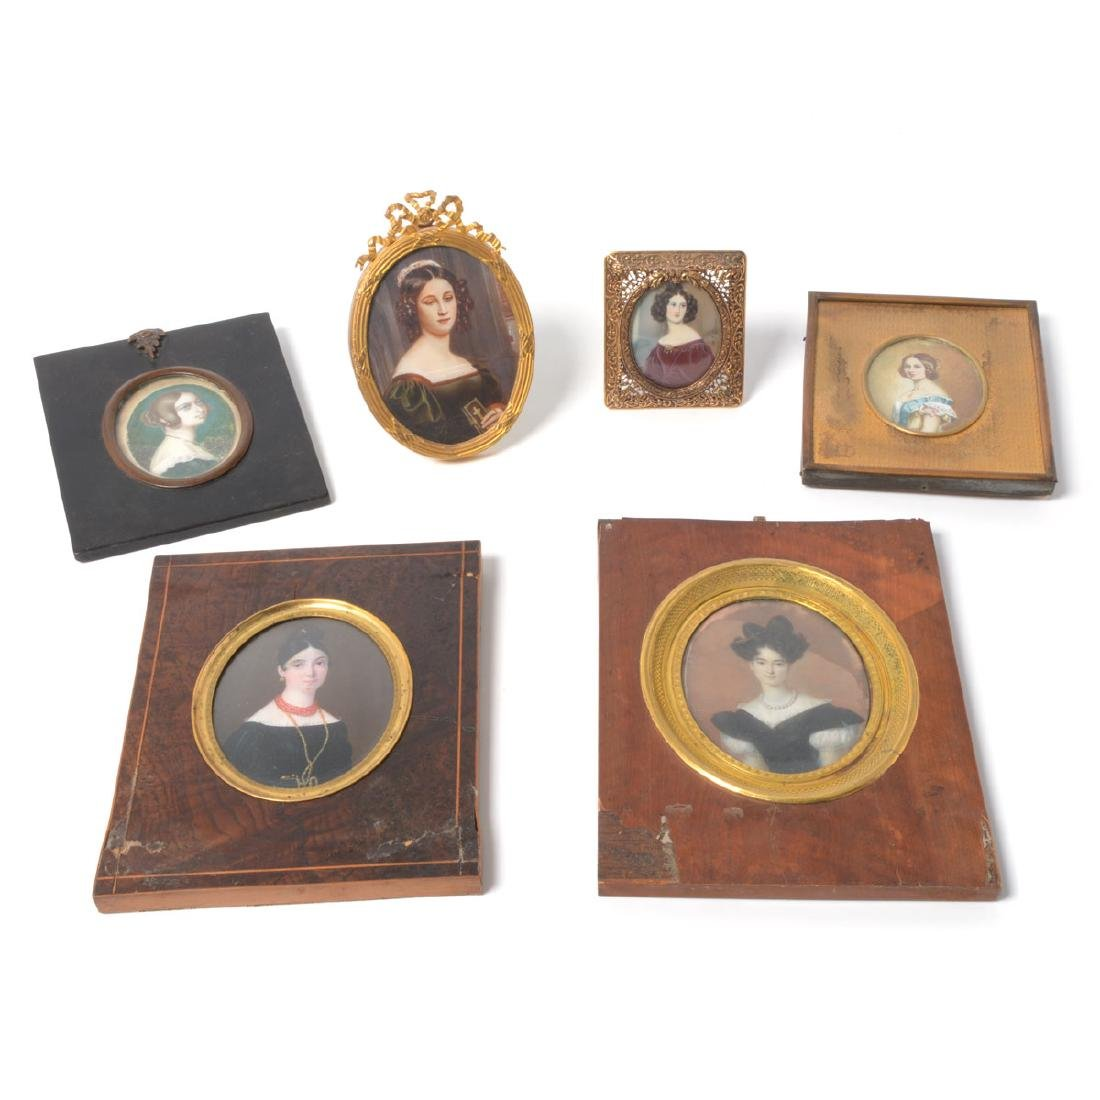 Six Miniature Portraits of Pre-Civil War Era Women